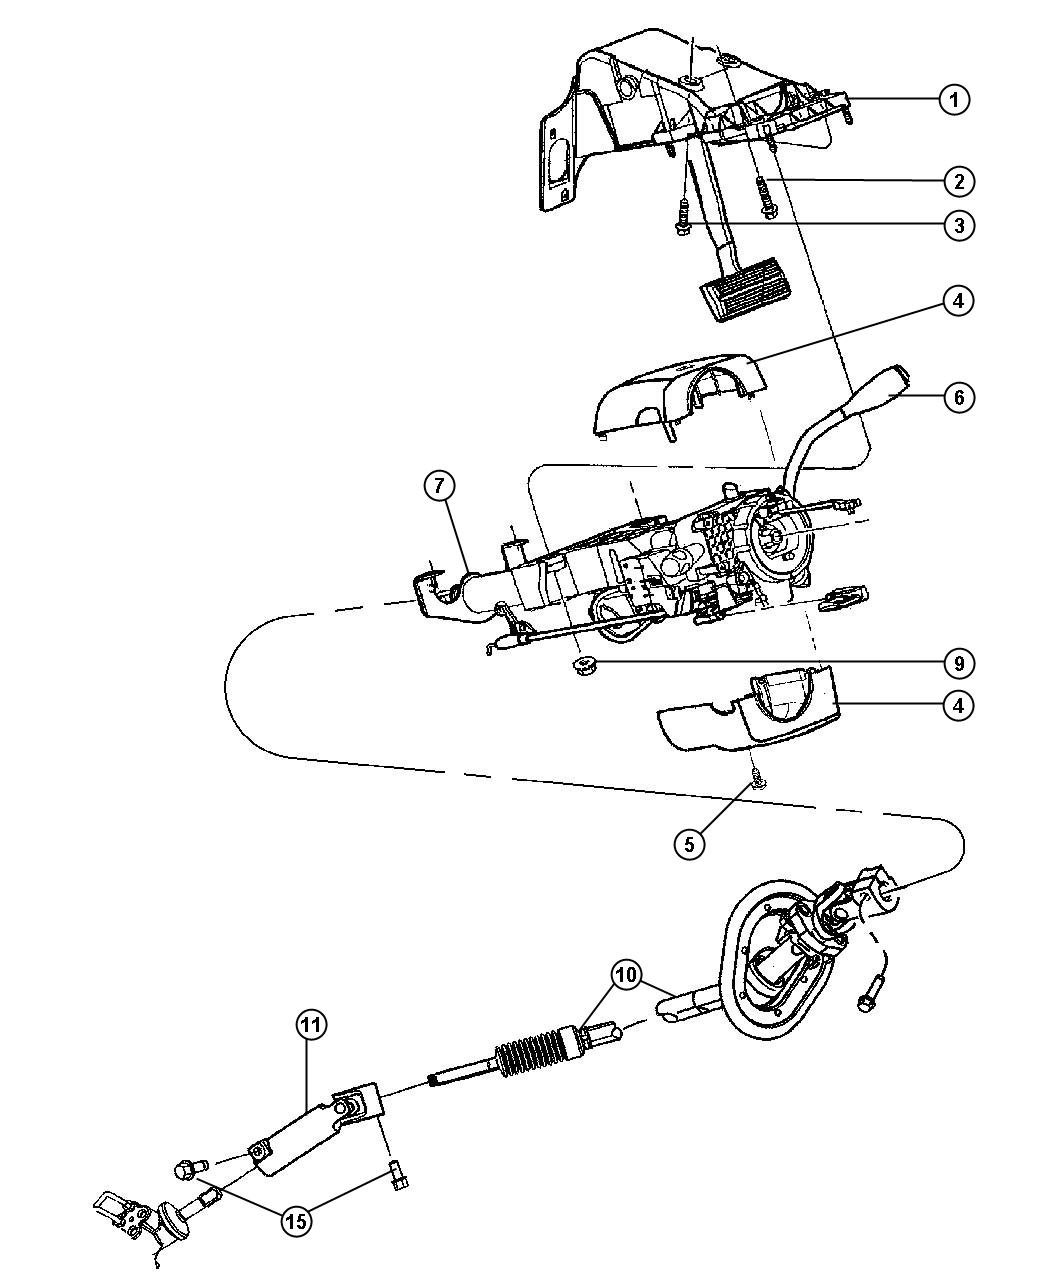 2010 Dodge Ram 2500 Hardware package. Steering column